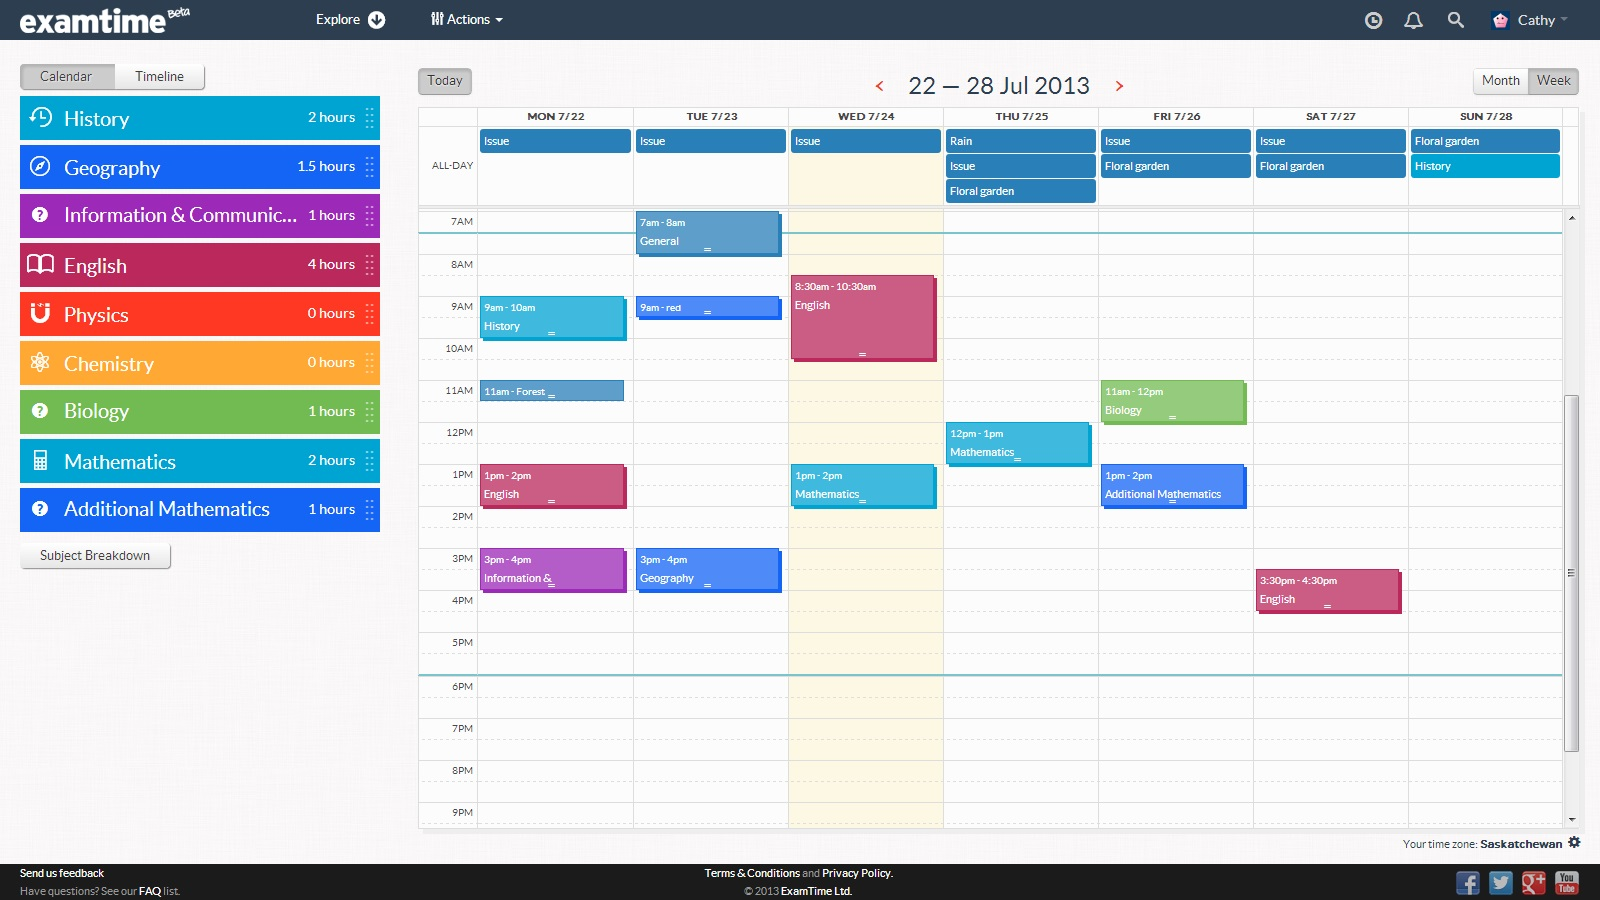 Calendar Planner Maker : Create a revision timetable with examtime s new study tool